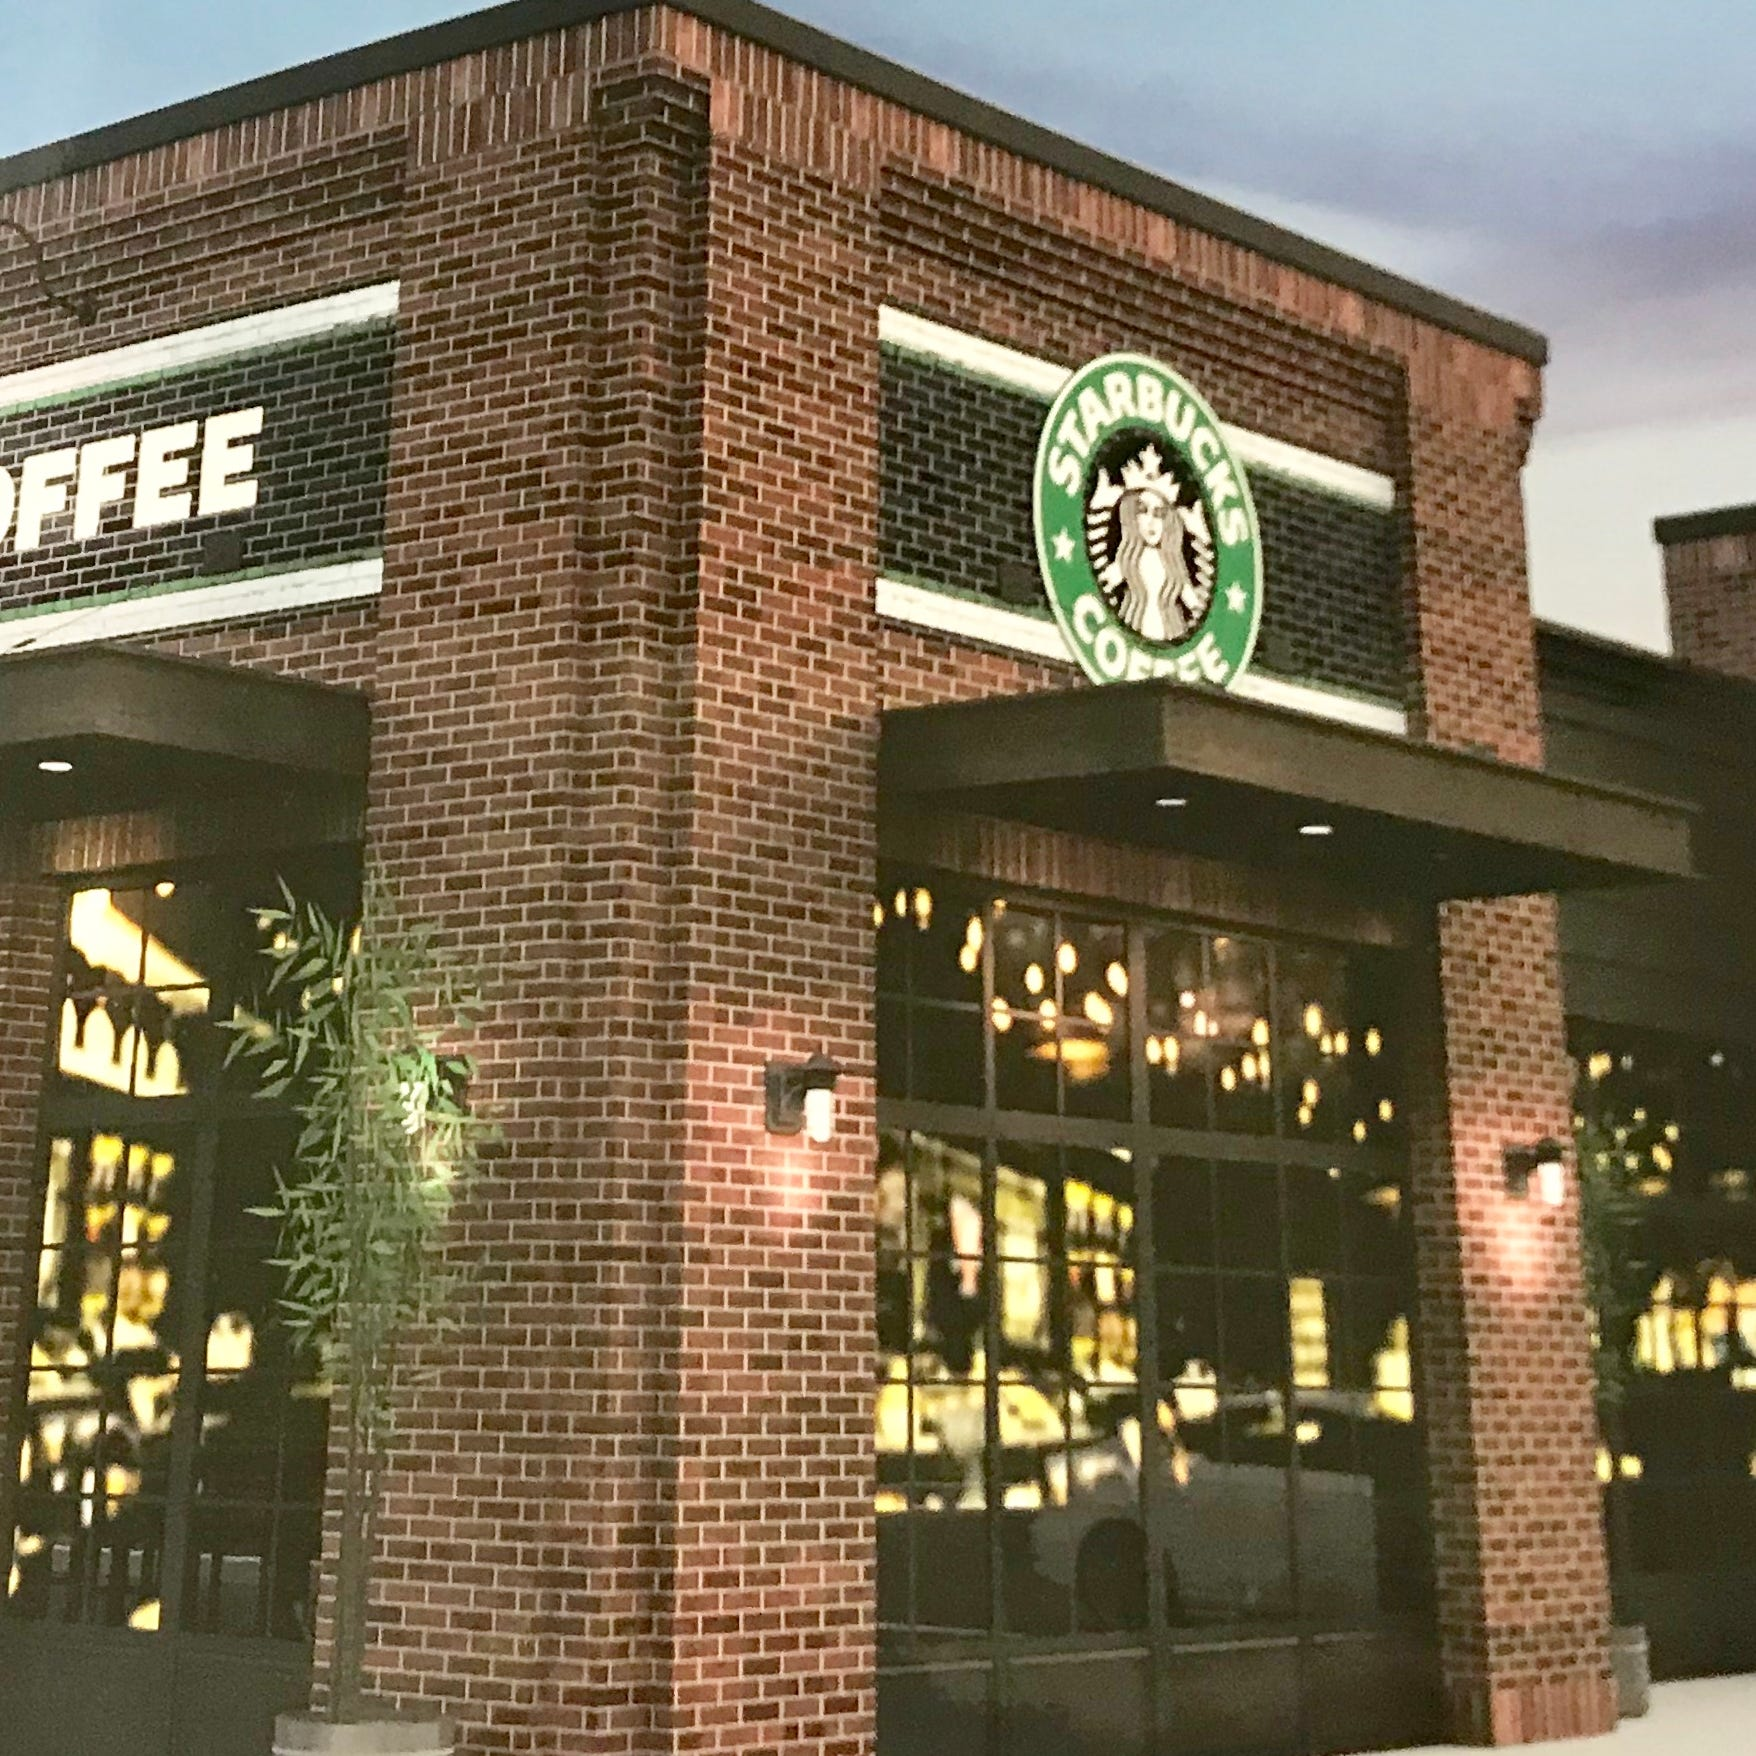 Harbor Freight, stand-alone Starbucks, Big Lots with furniture coming to Heath